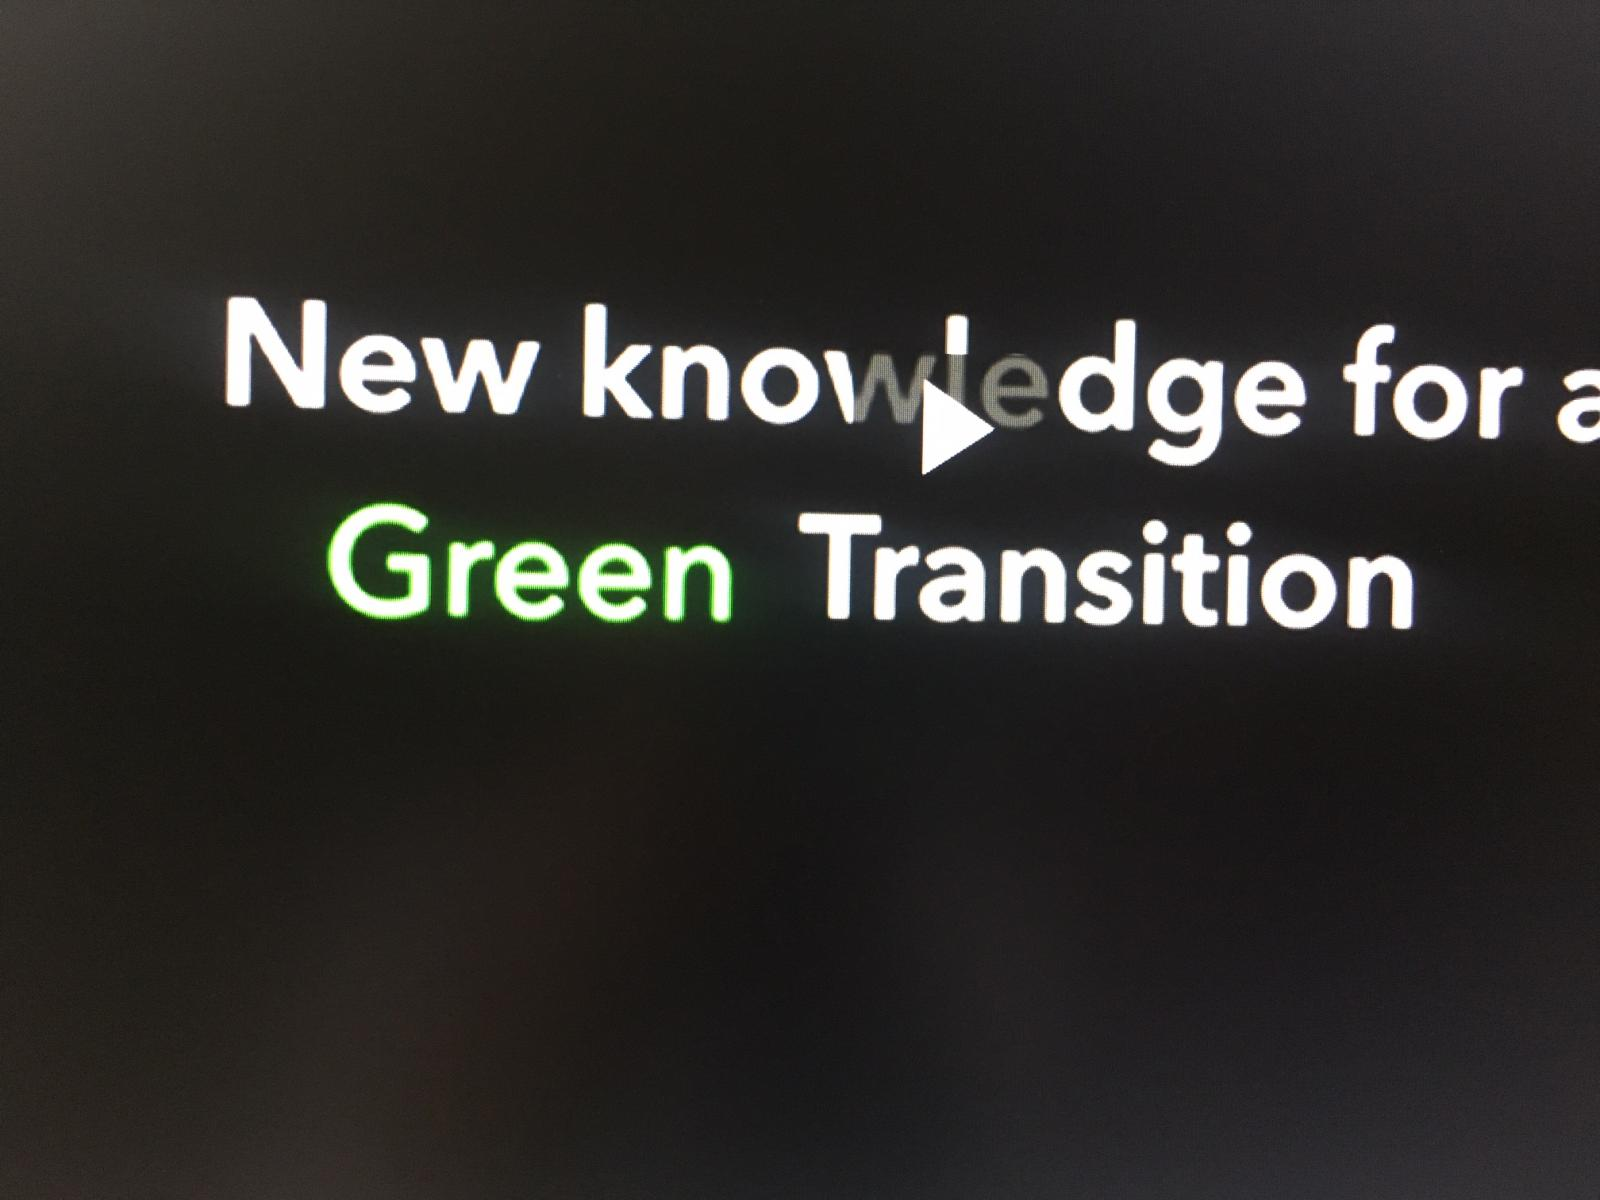 Bildruta film New knowledge for a Green Transition